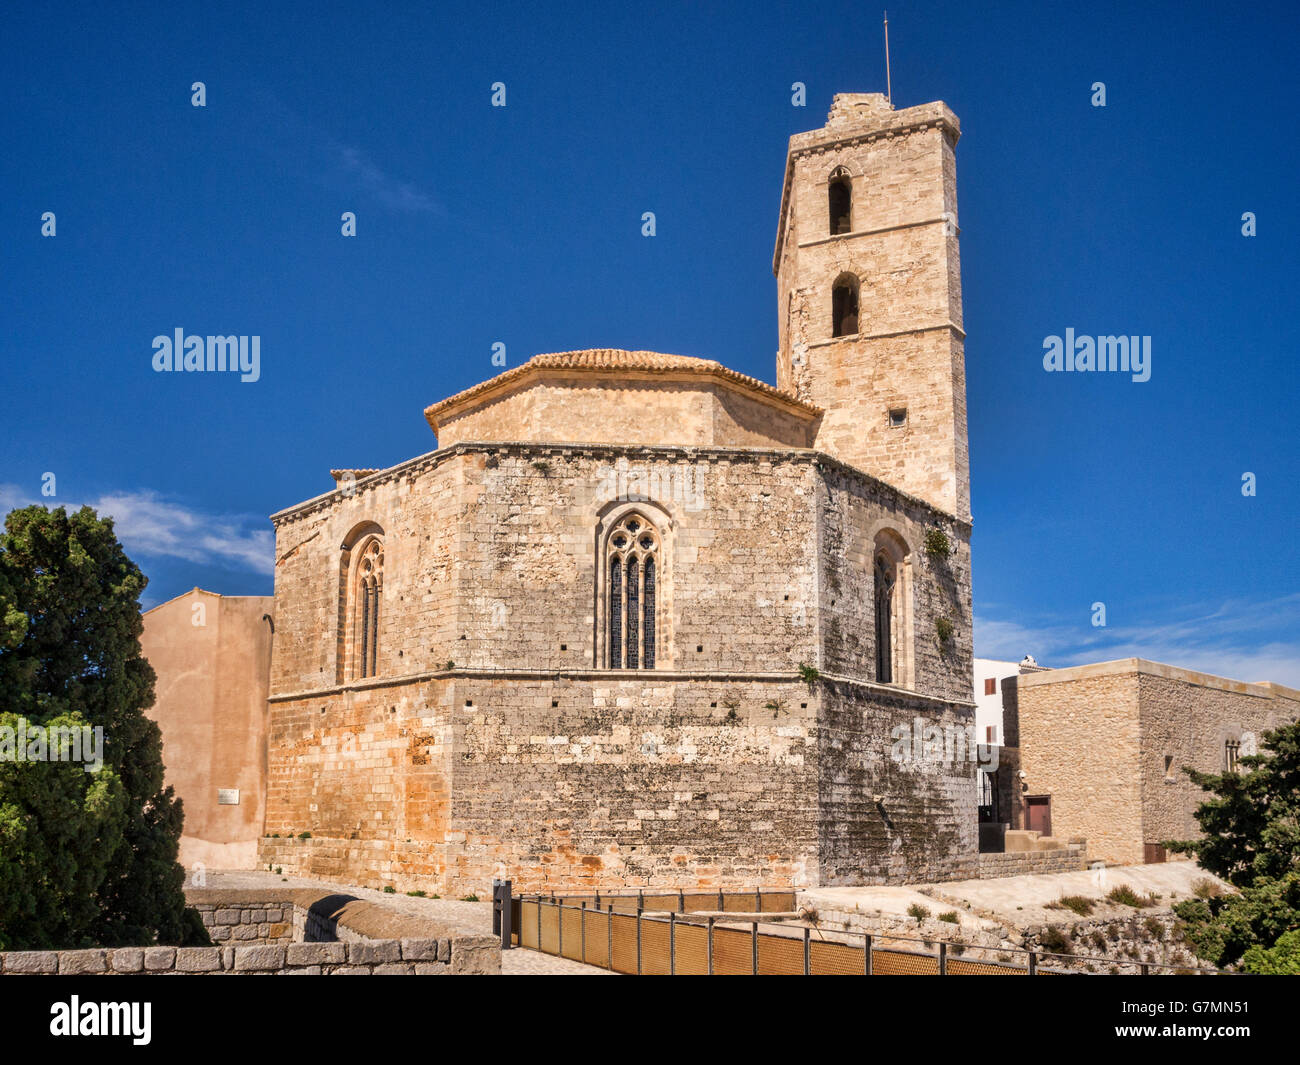 The Cathedral of Our Lady of the Snows in the Dalt Vila, the old part of Ibiza Town, Ibiza. - Stock Image